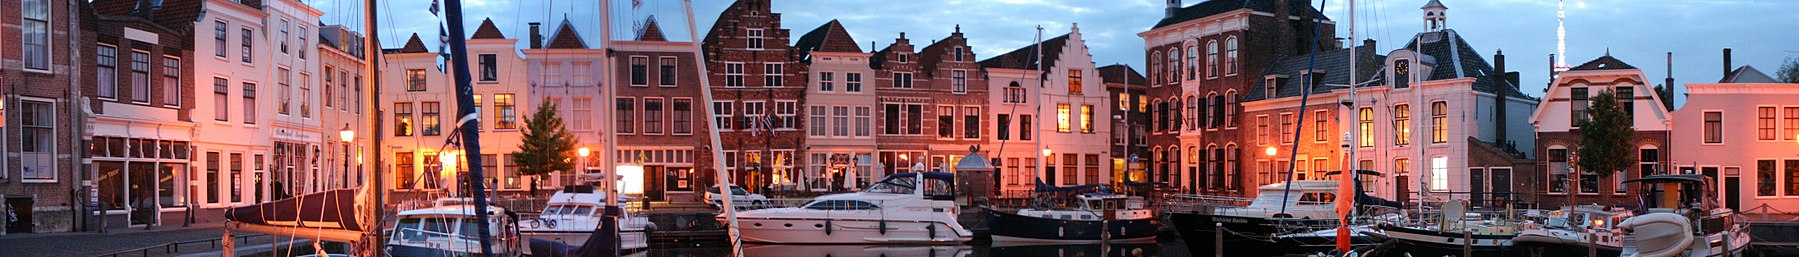 City harbor of Goes, the Netherlands banner.jpg